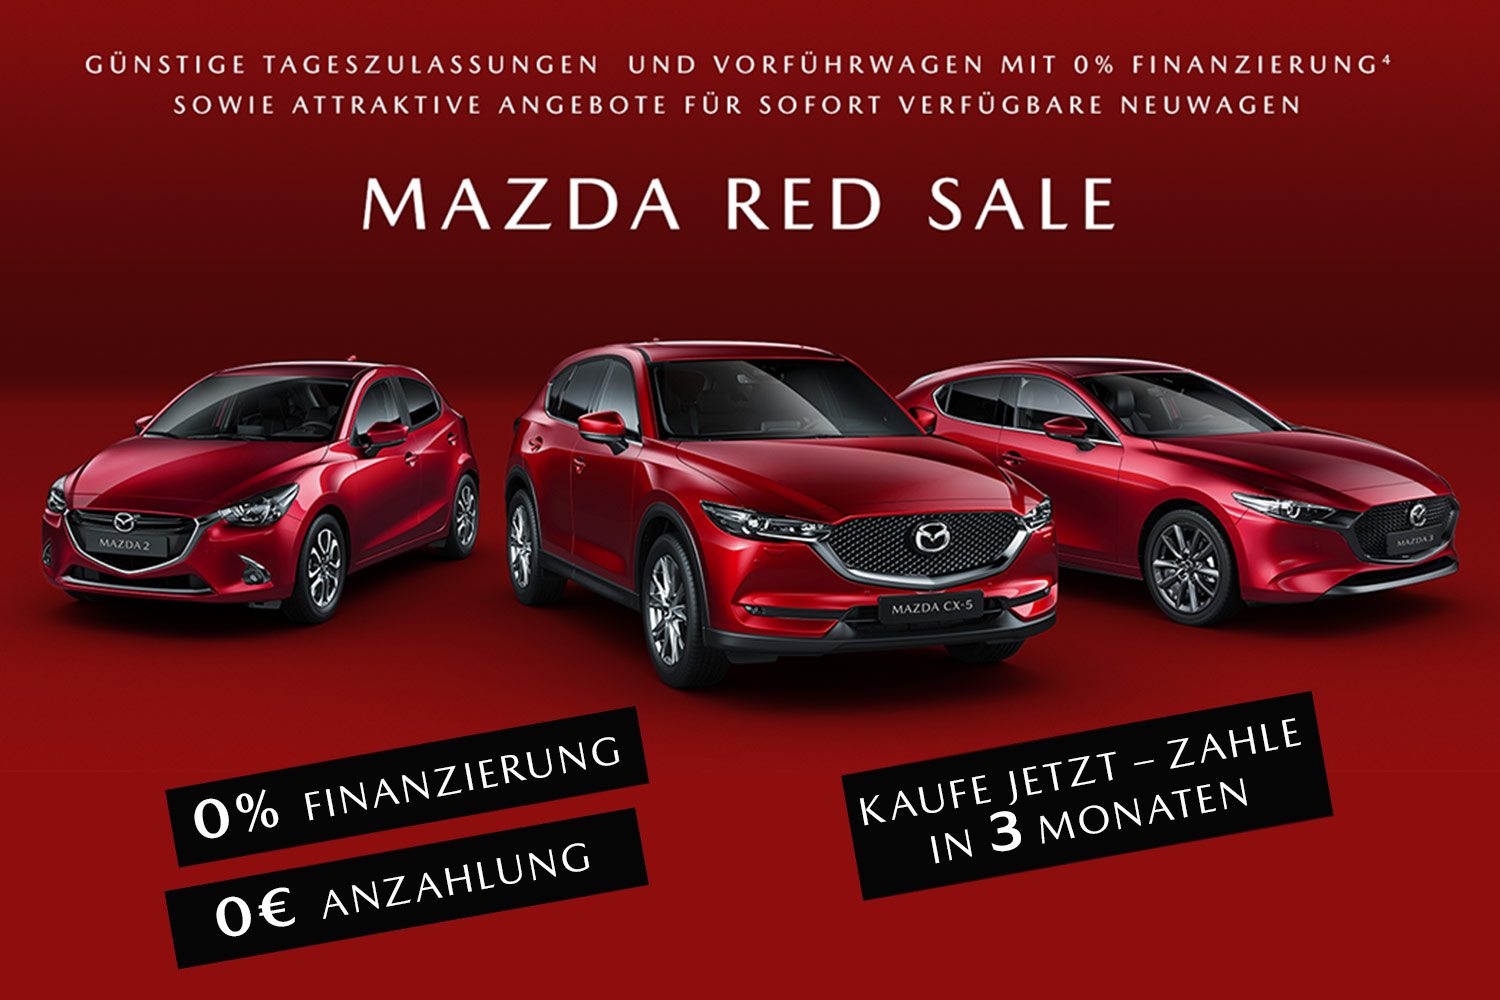 Mazda2, CX-5 und Mazda3 in Magmarot Metallic. Mazda Red Sale